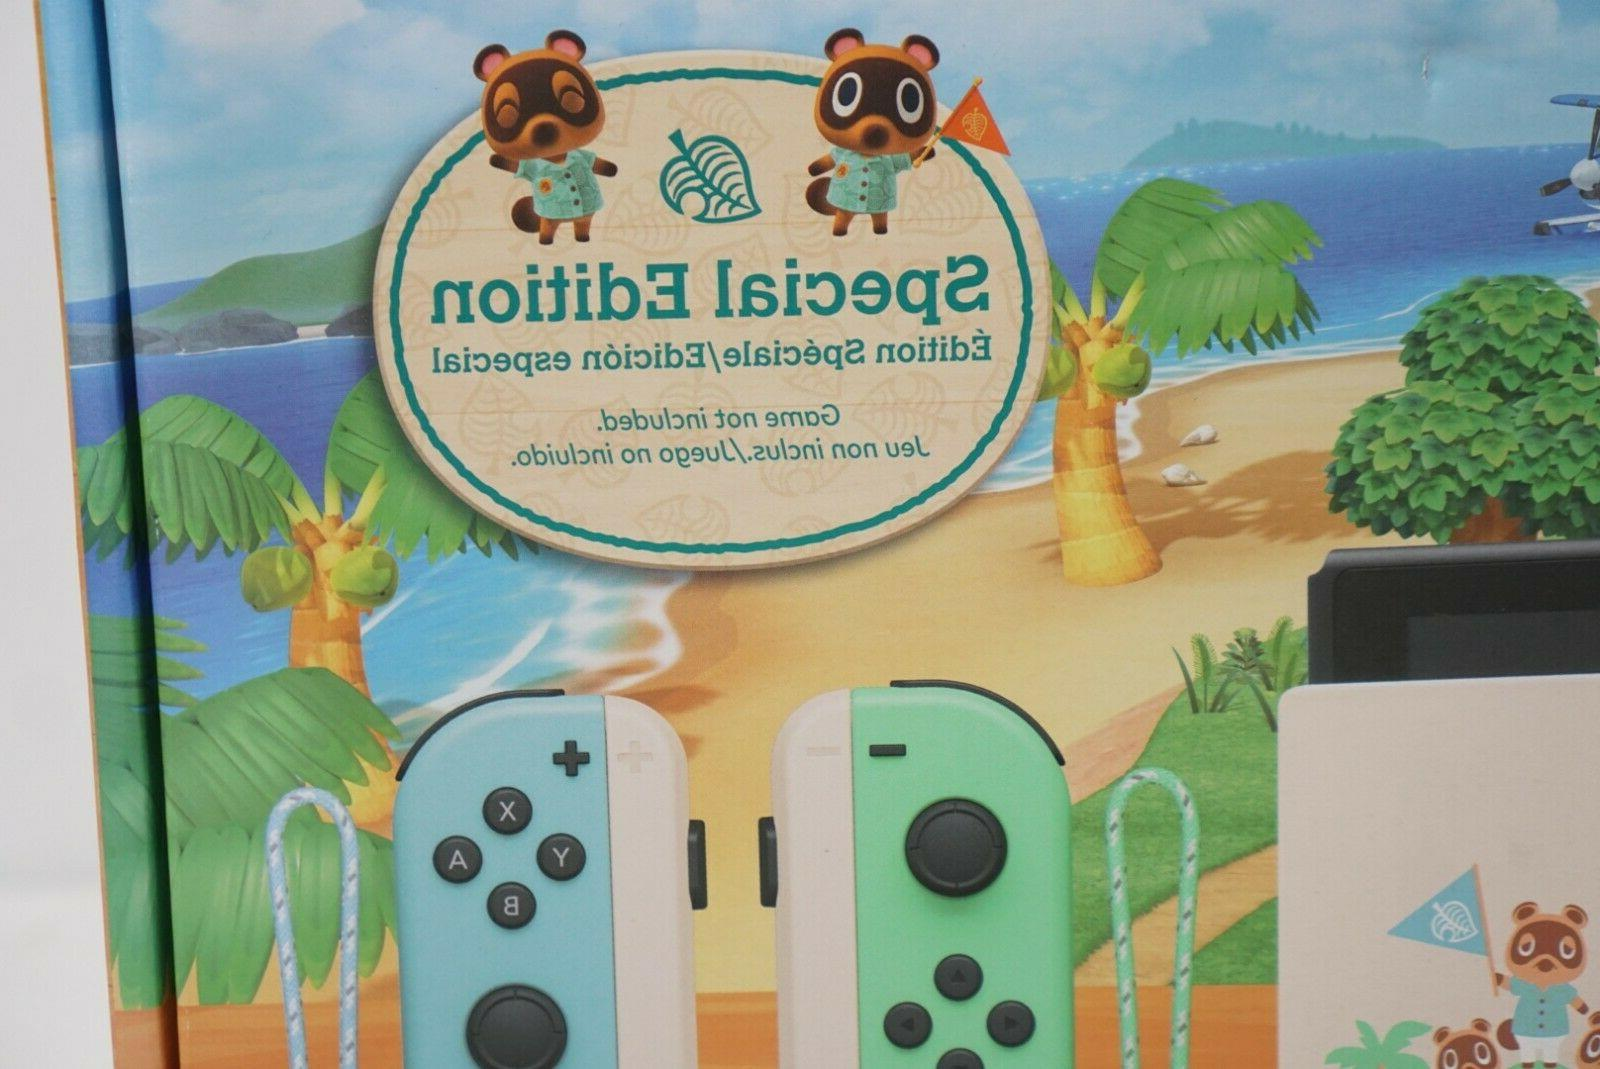 Nintendo Animal New Edition